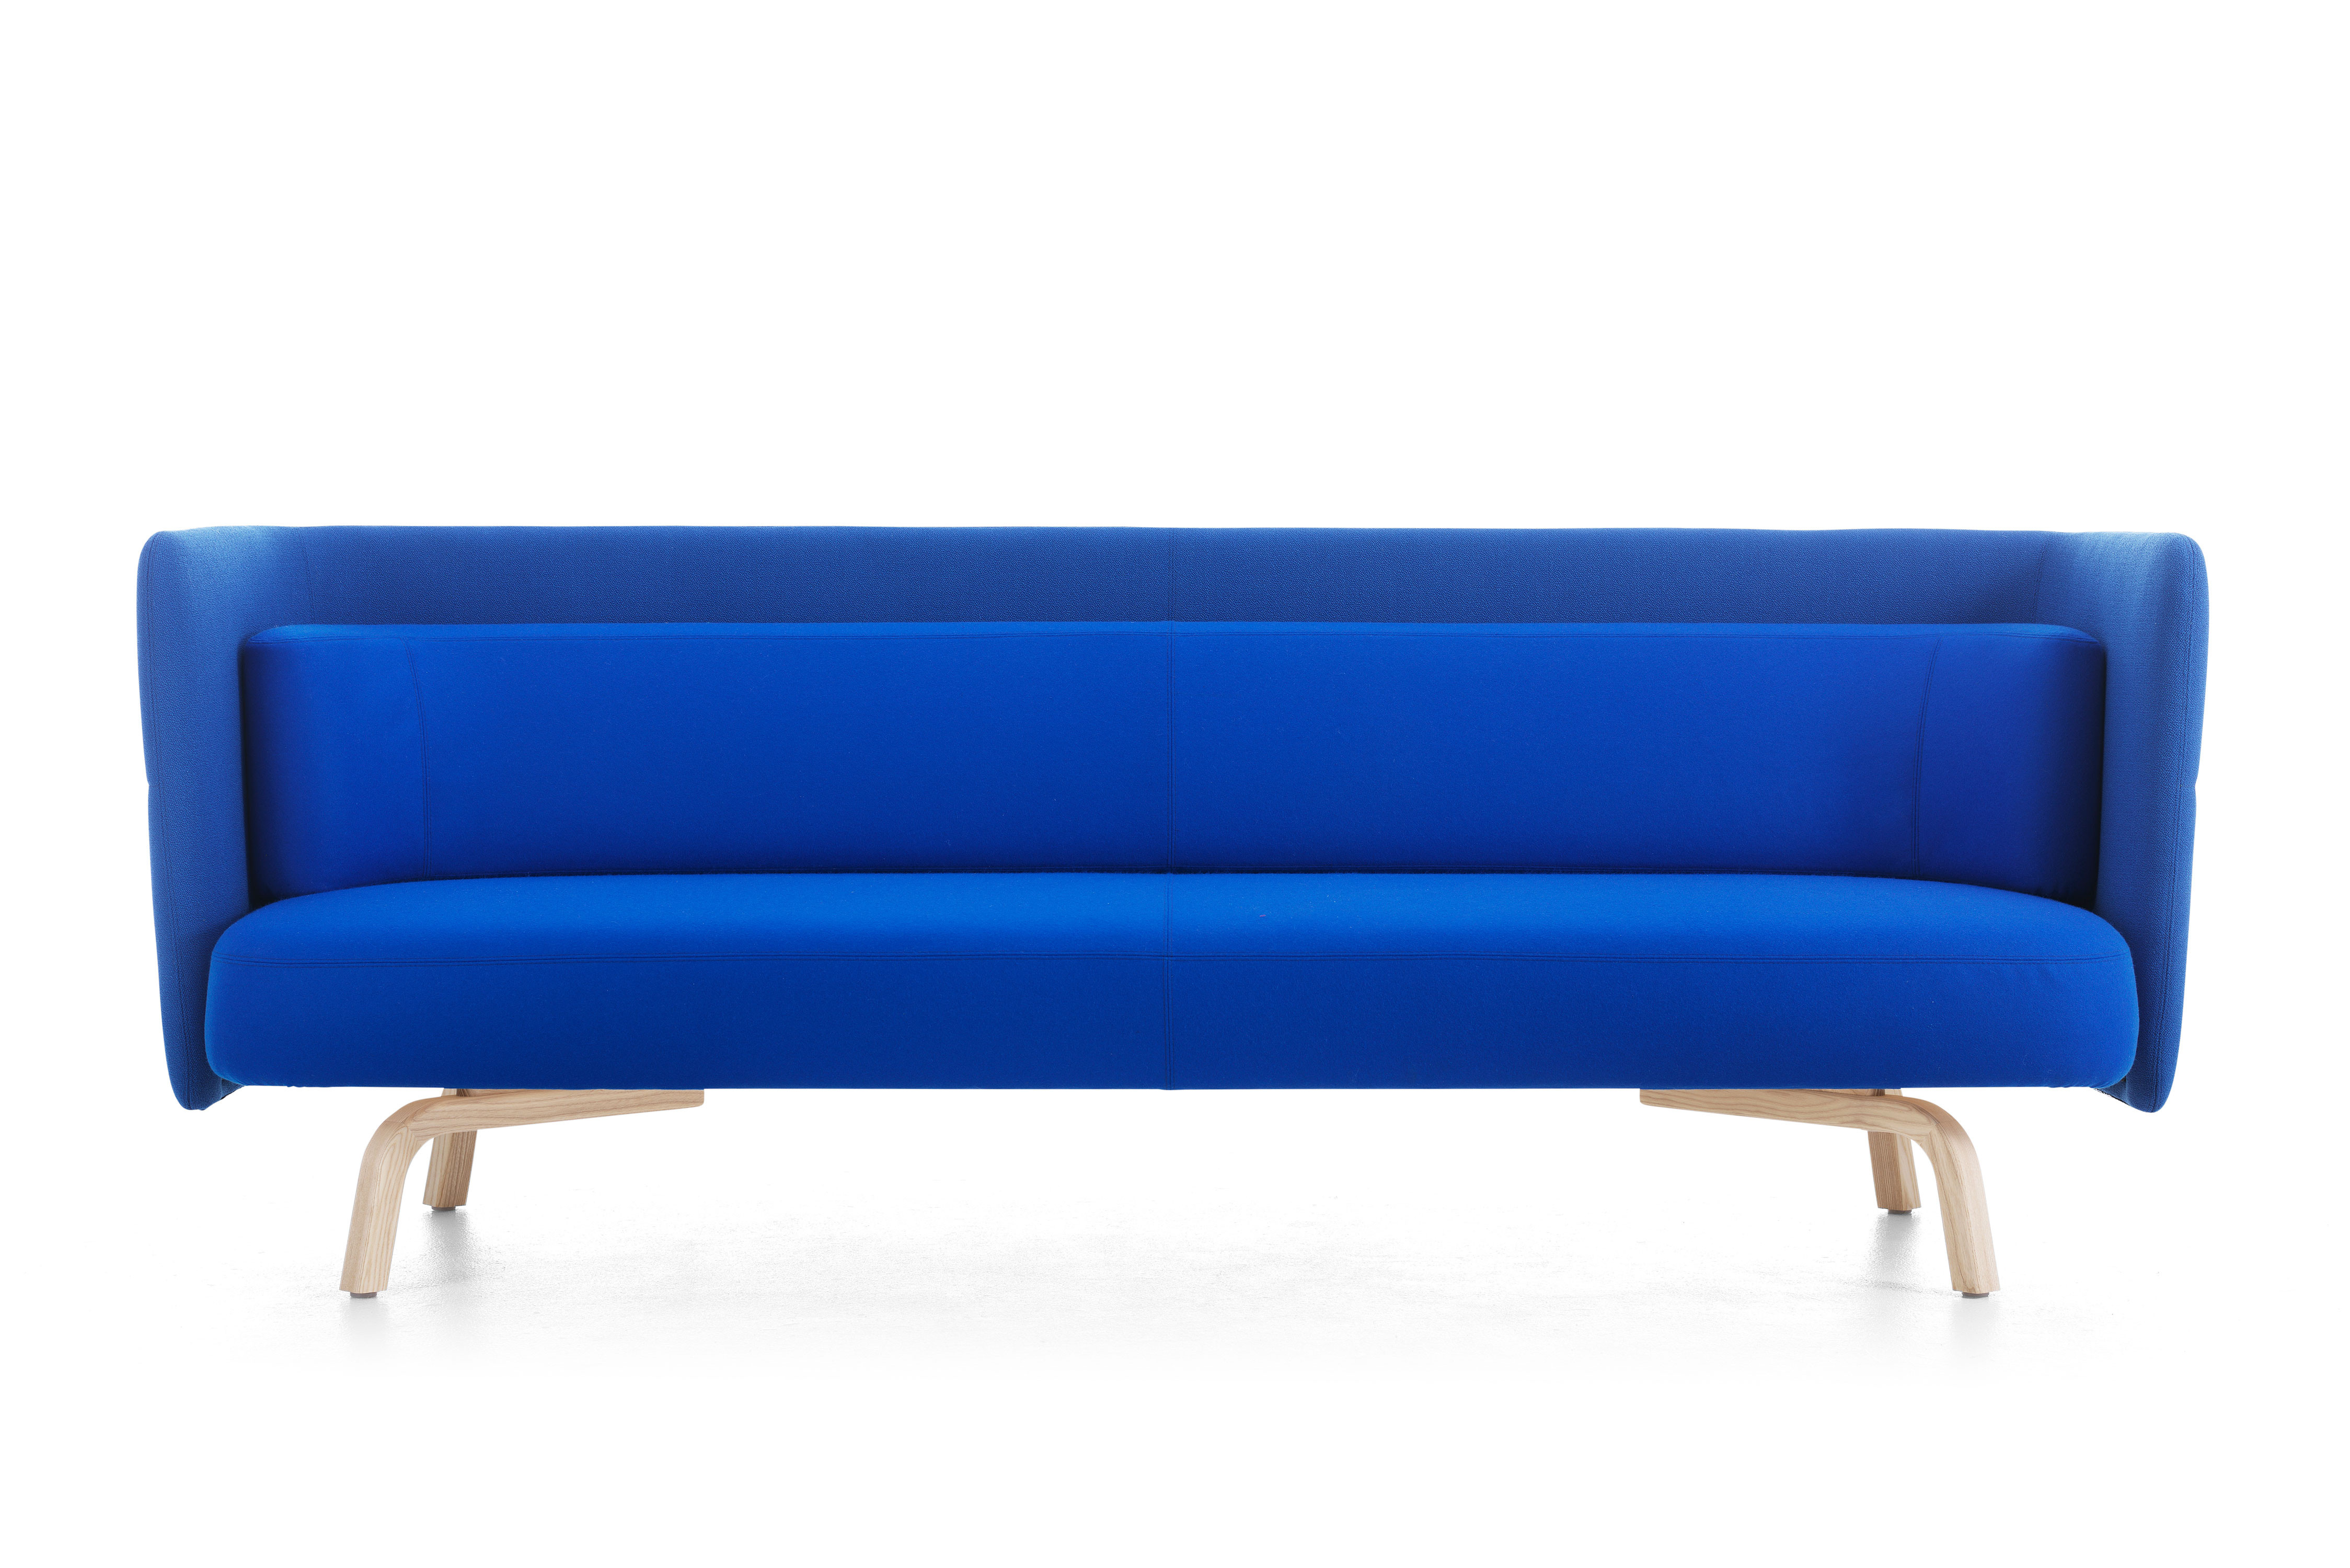 Portus Easy Chairs amp Sofas Lammhults : portus sofa lowback 3seats from www.lammhults.se size 4496 x 3000 jpeg 1340kB